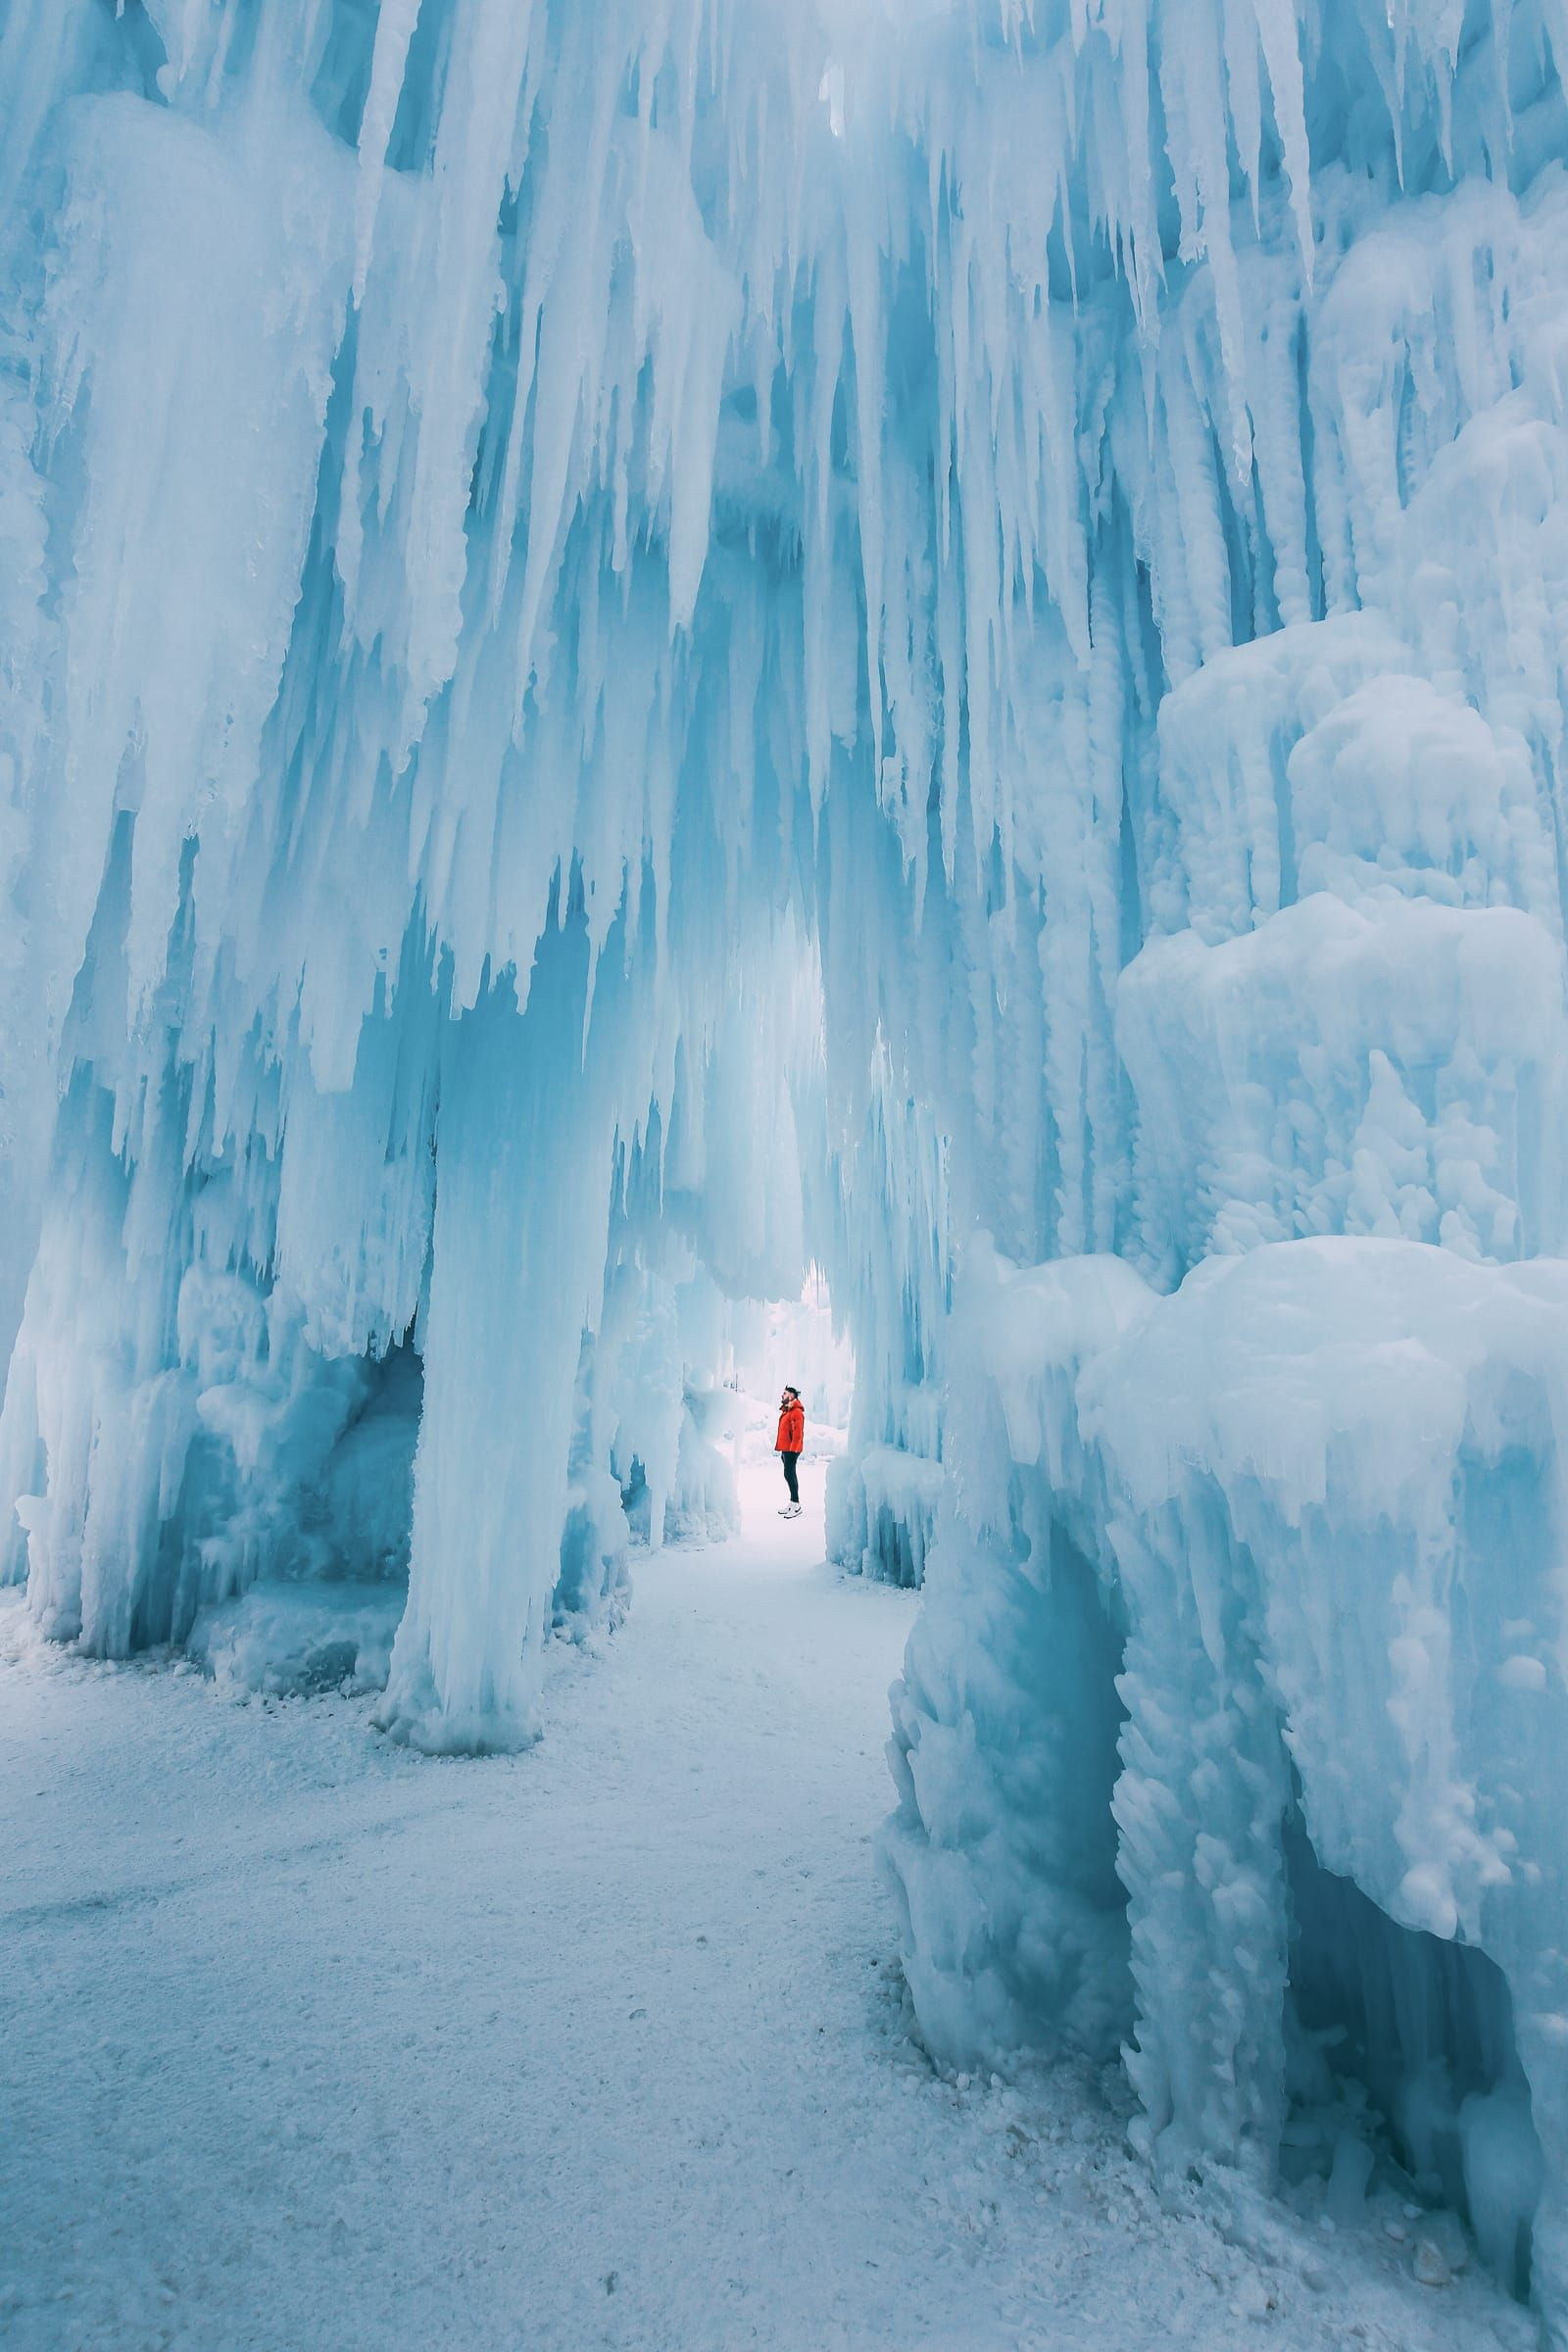 How To See The Most Beautiful Ice Castle In Alberta, Canada